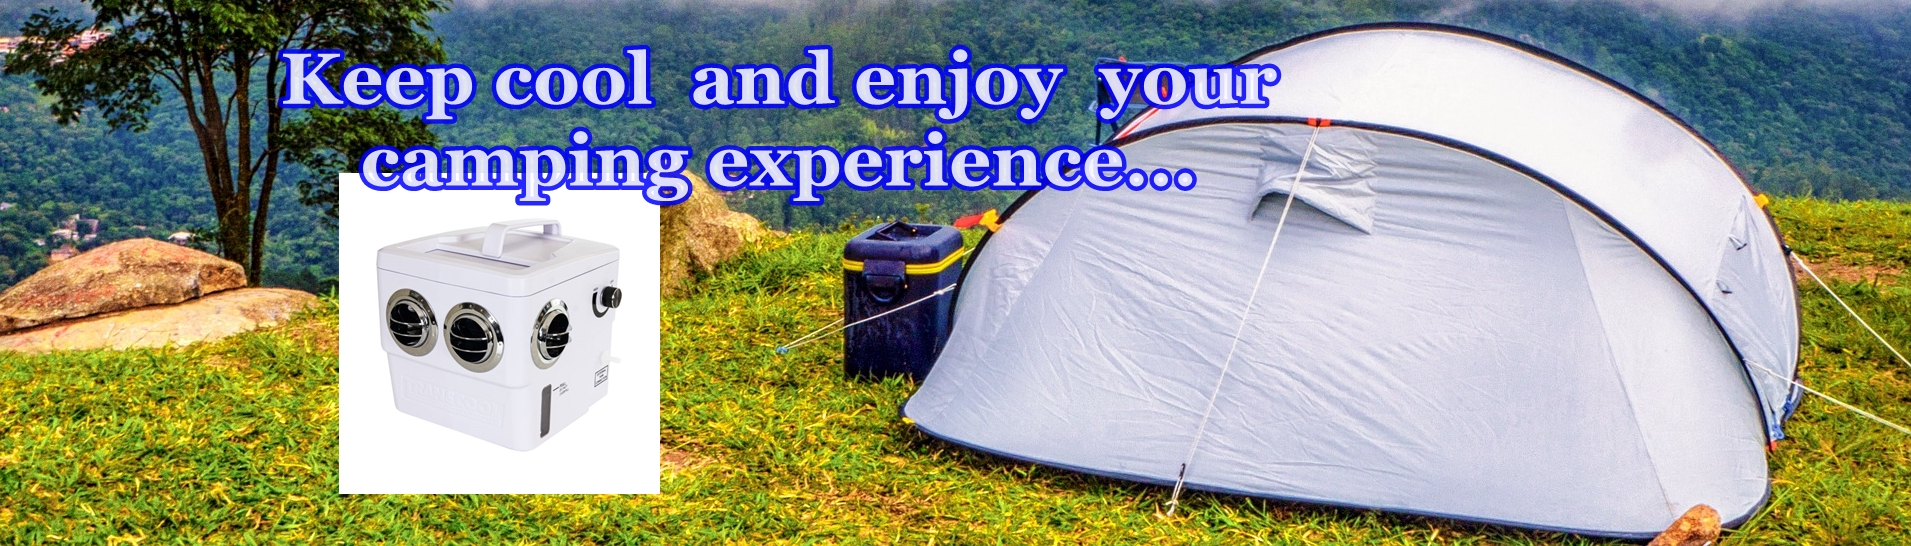 air conditioners for tent camping... Enjoy 2